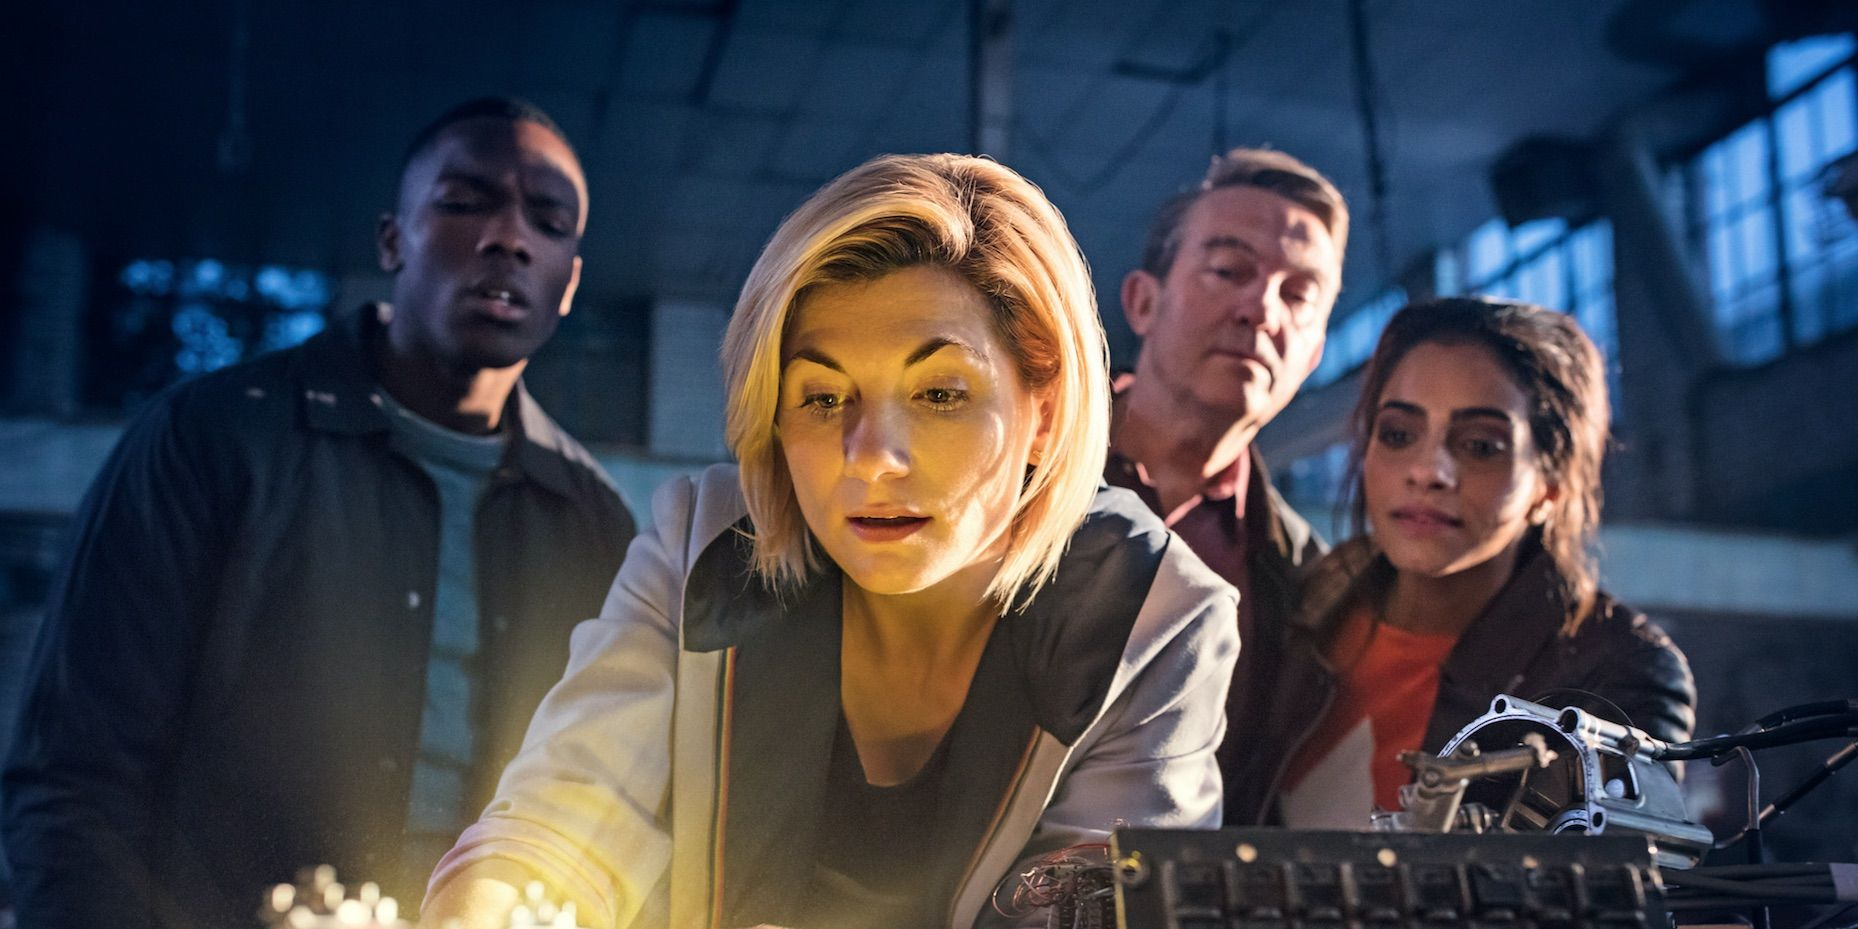 Jodie Whittaker's Doctor Who, Tosin Cole's Ryan, Bradley Walsh's Graham, Mandip Gill's Yaz